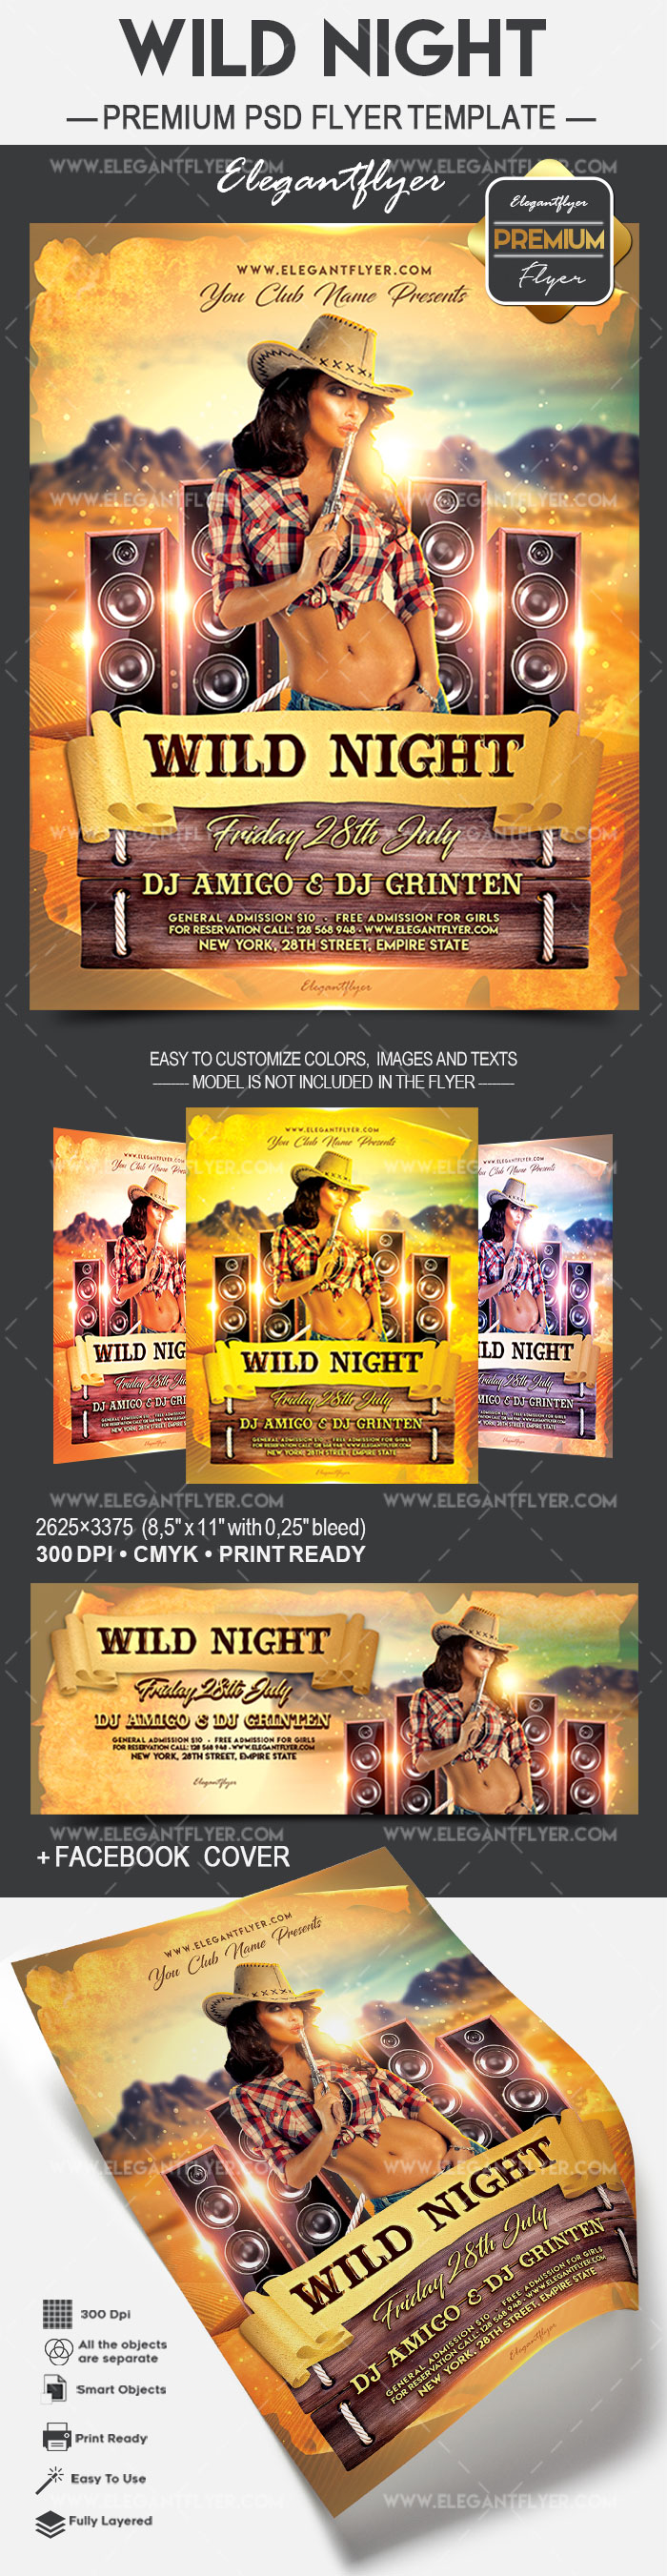 Flyer Template for Wild Night Party